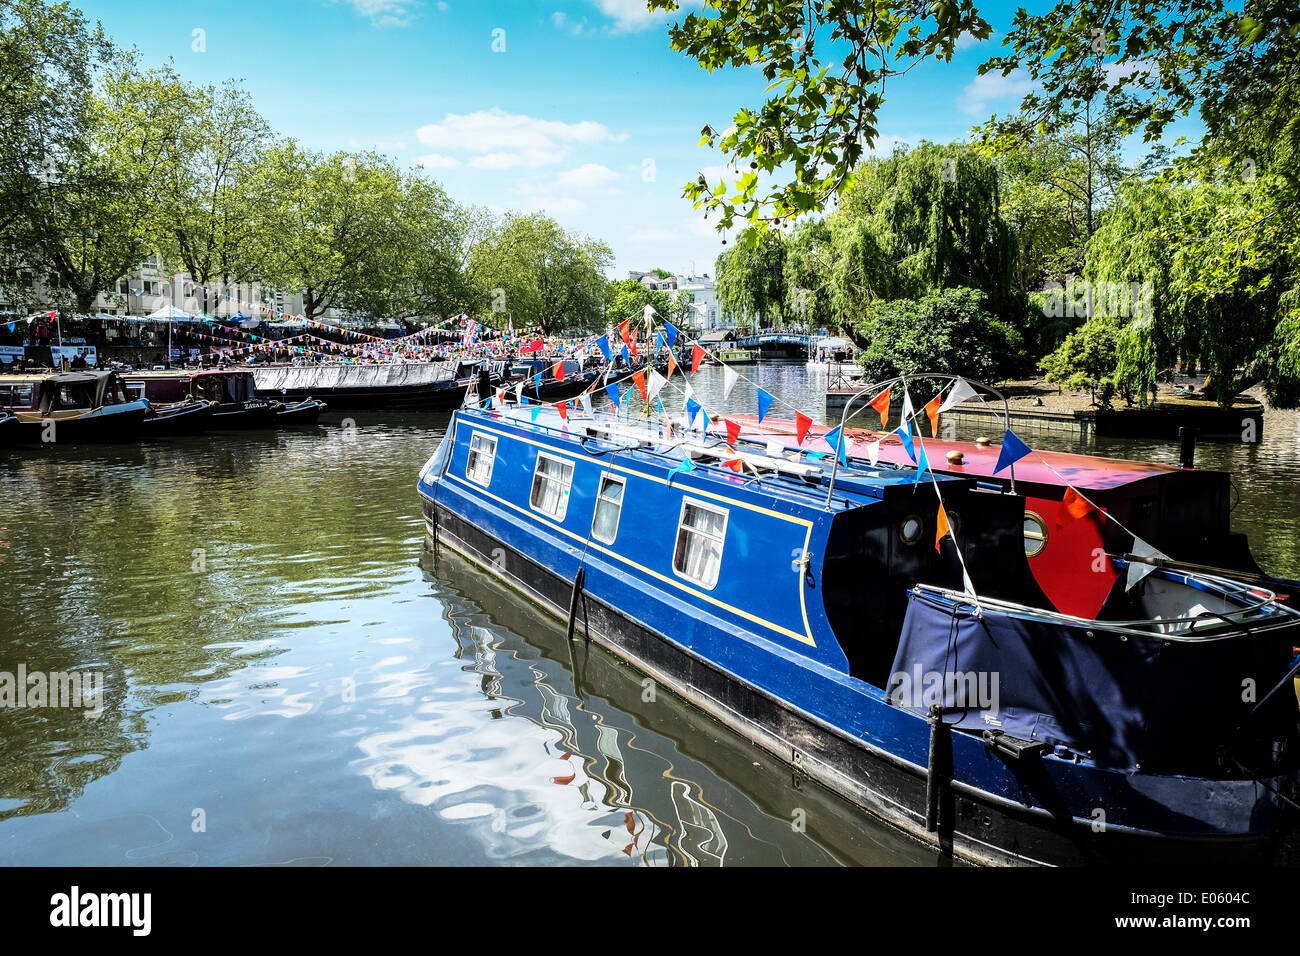 Little Venice, London, UK. 3rd May 2014. The annual Canalway Cavalcade celebration organised by the Inland Waterways Association, is taking place over the May Day holiday weekend at Little Venice, Paddington, London. Over 100 colourful canal boats are present at this traditional event.  Photographer:  Gordon Scammell/Alamy Live News - Stock Image